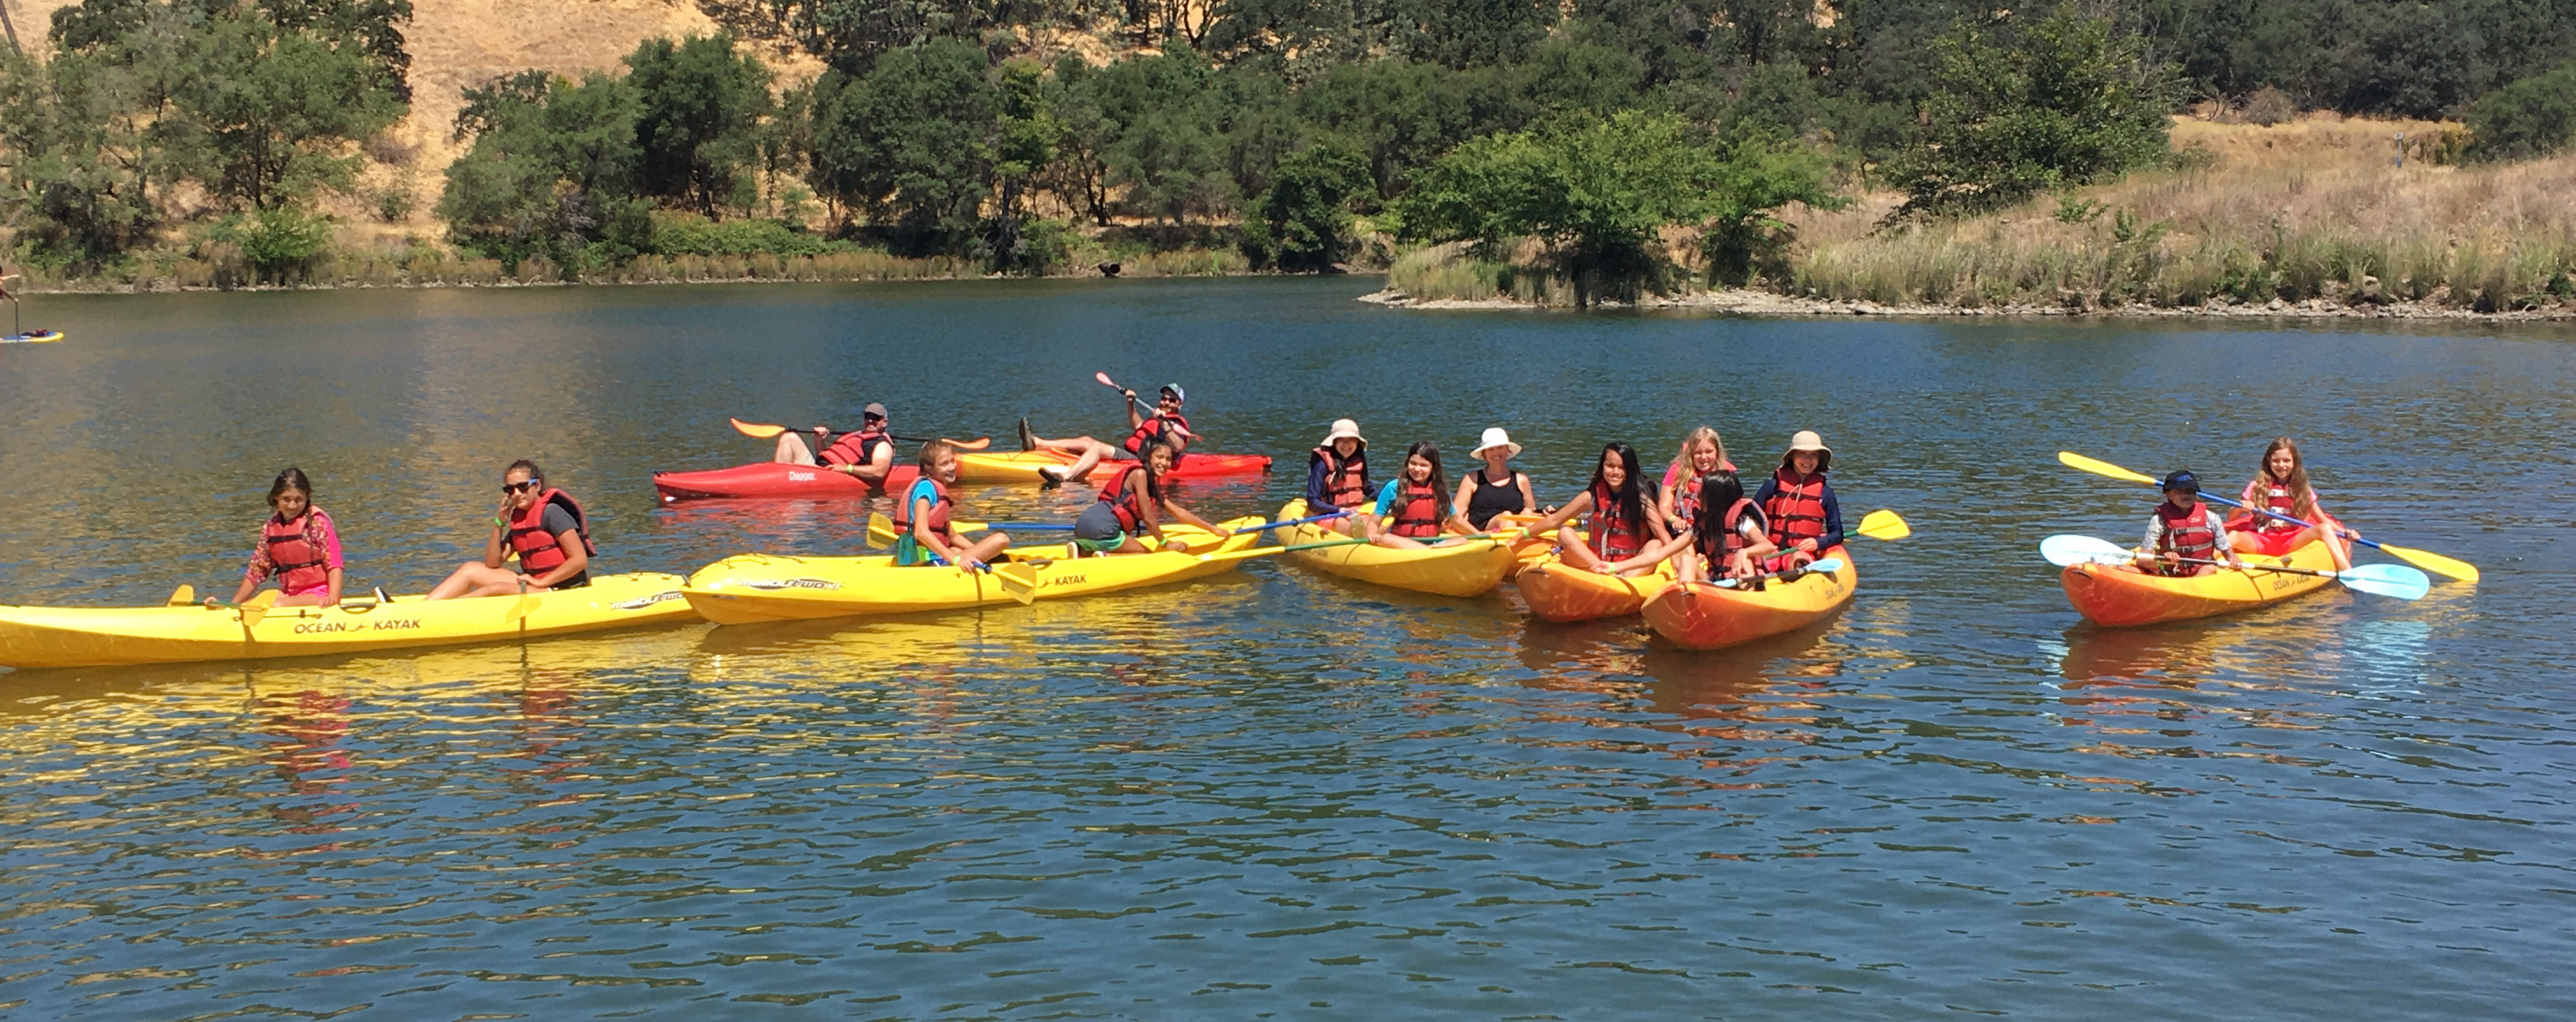 Campers kayaking on Lake Natoma